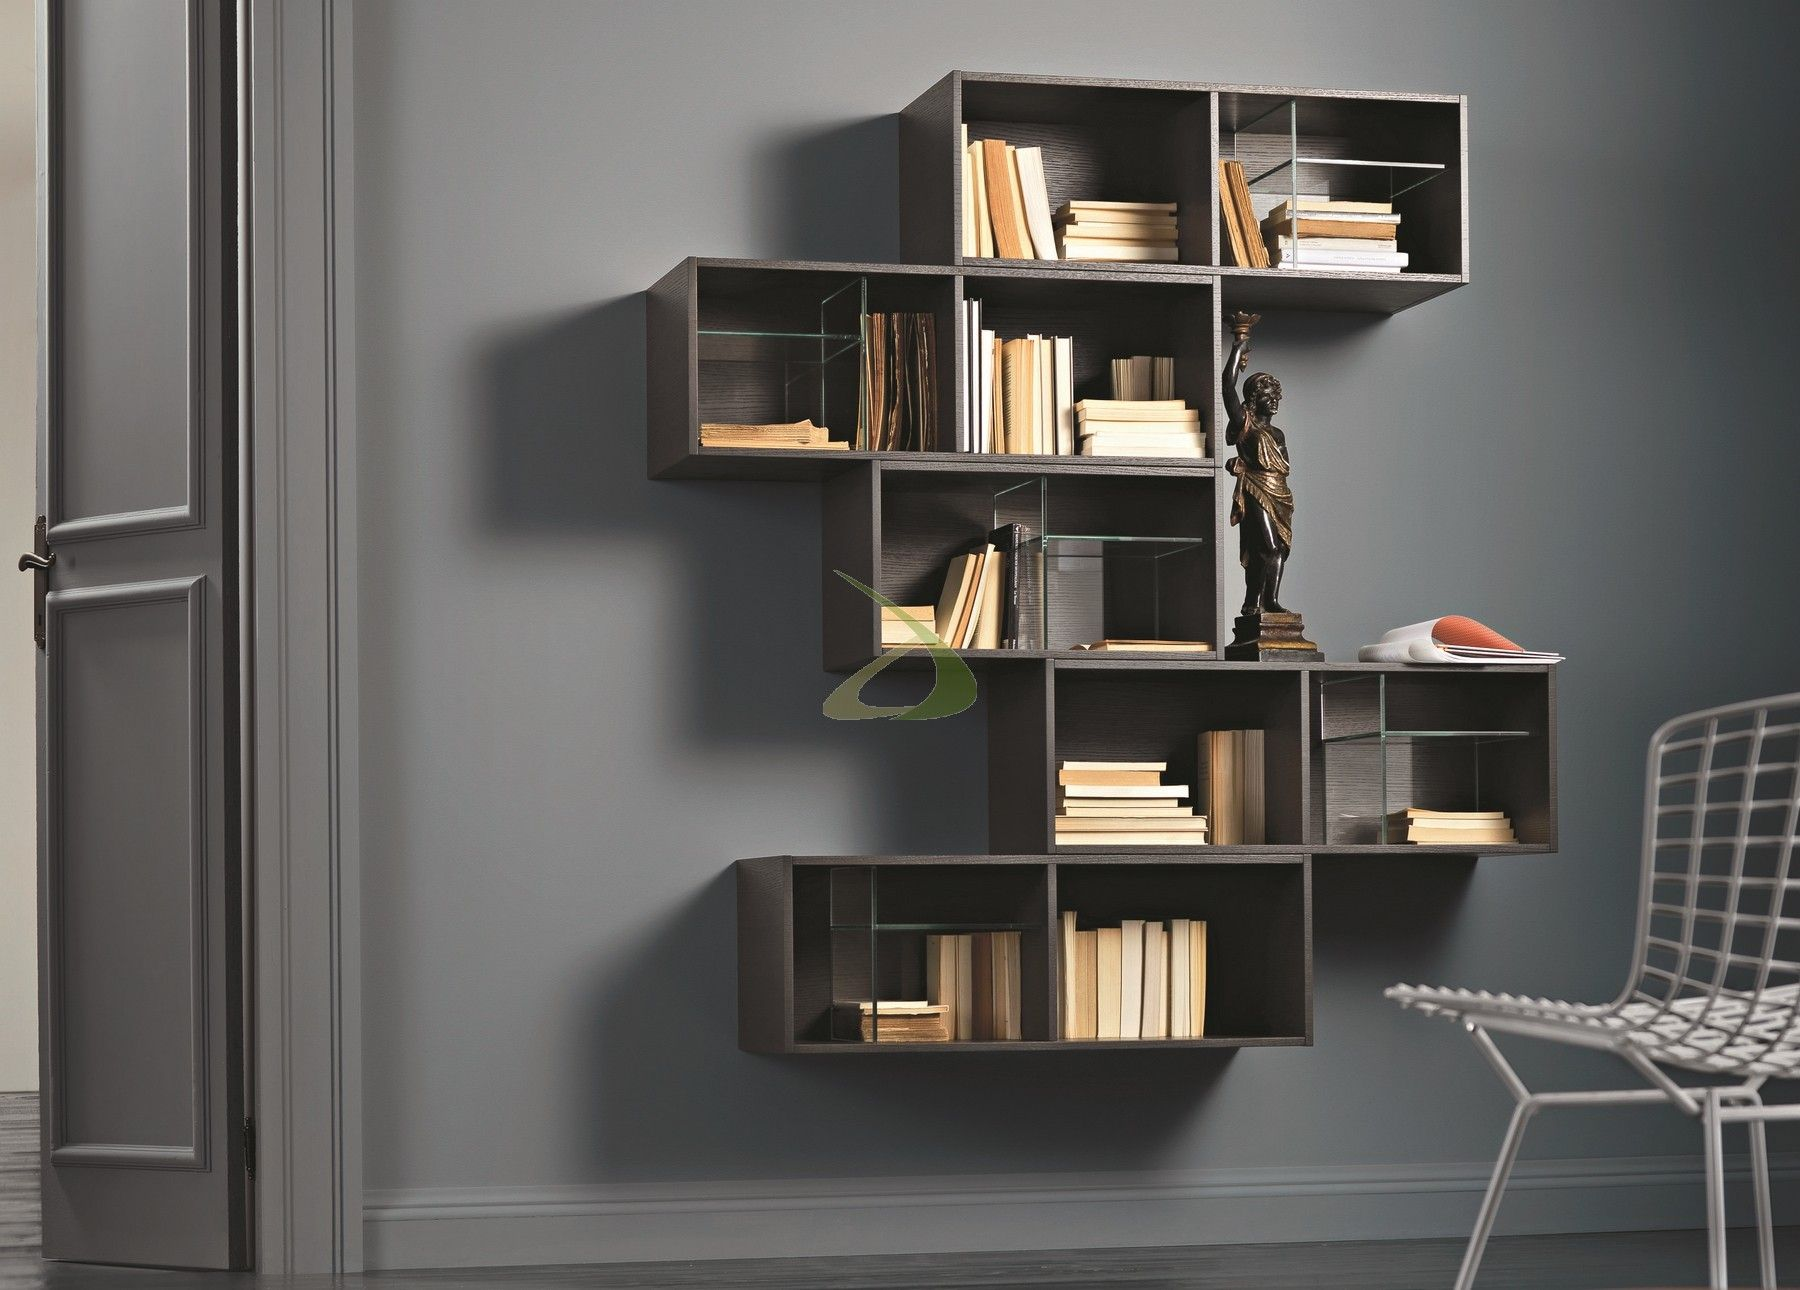 Mobile libreria sospesa iles arredo design online home for Arredo design online